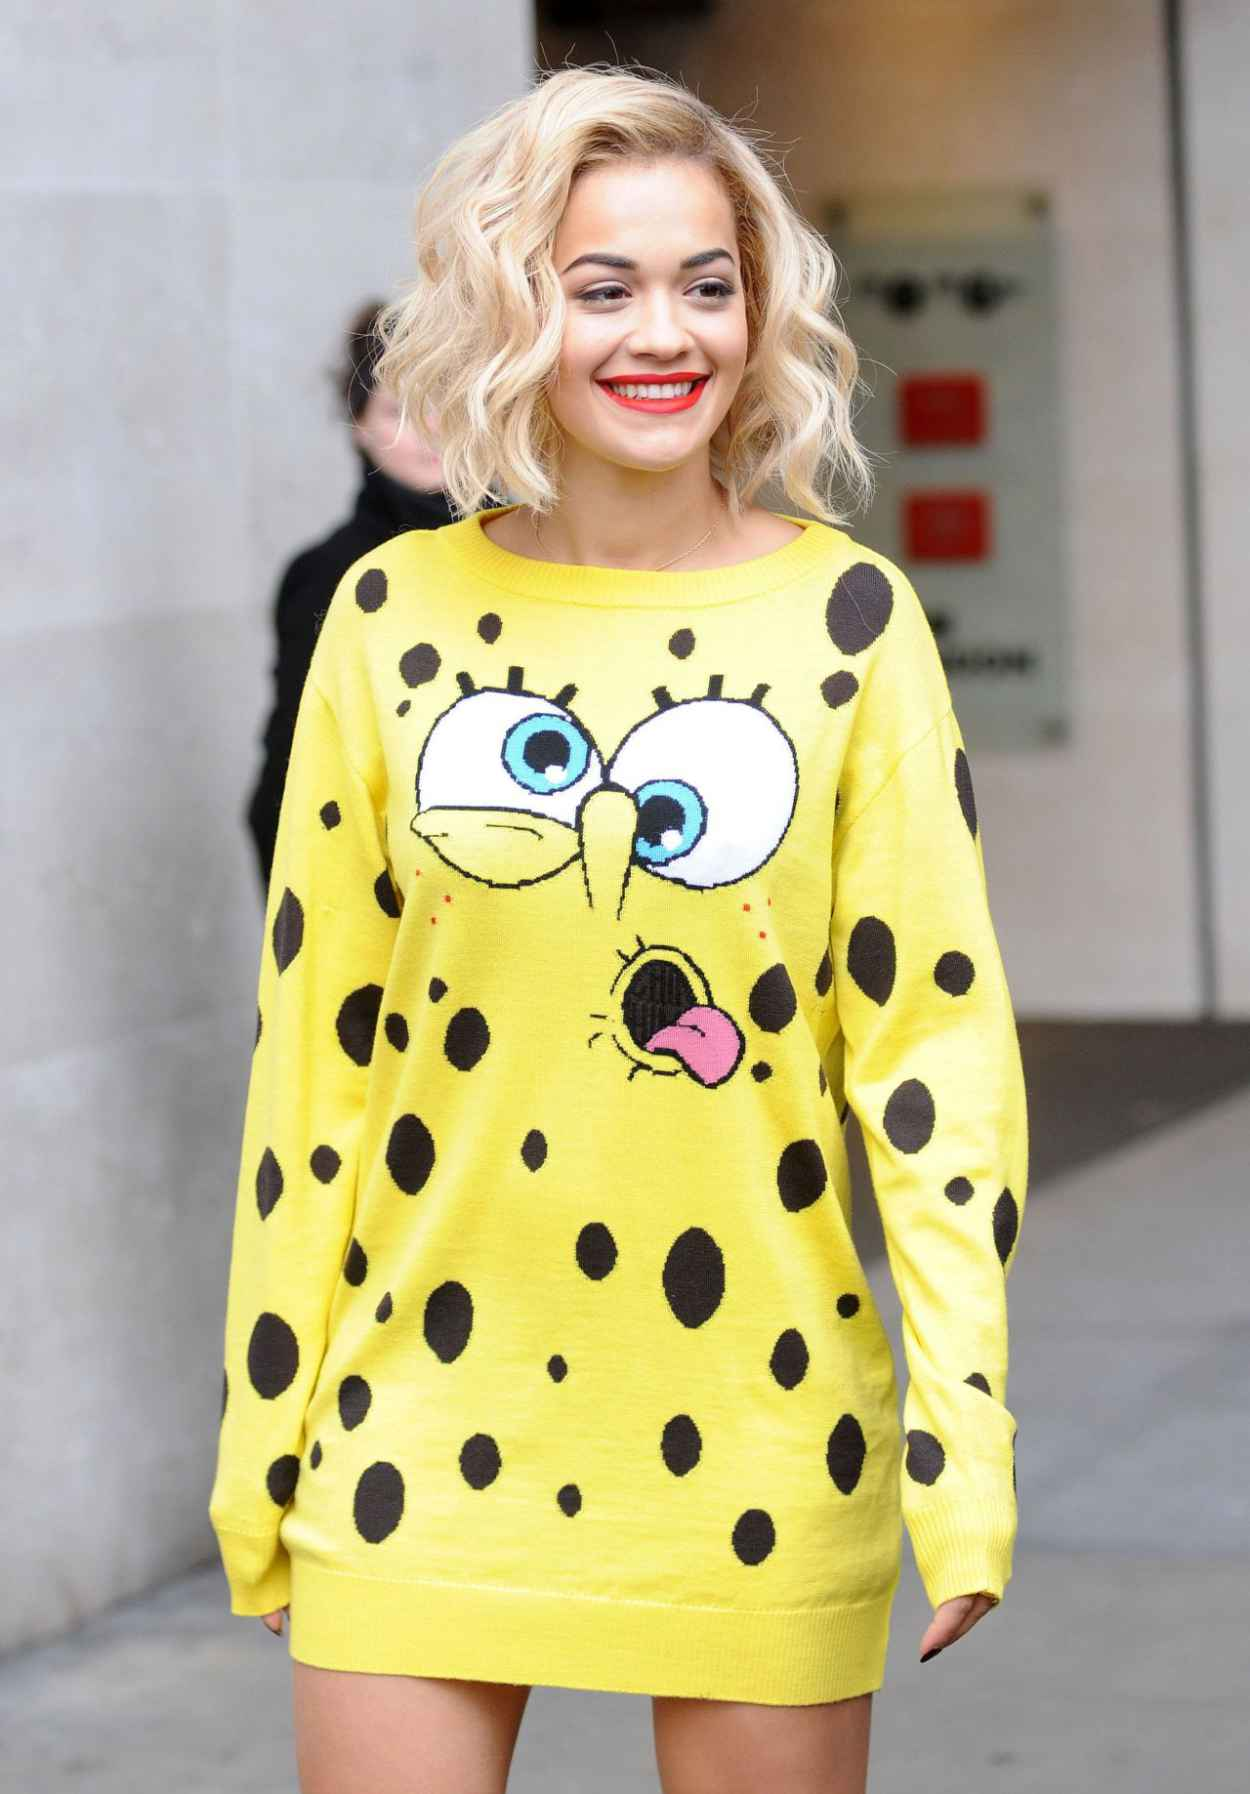 Rita Ora - Promoting the Release of Her New Single - London, March 2015-1